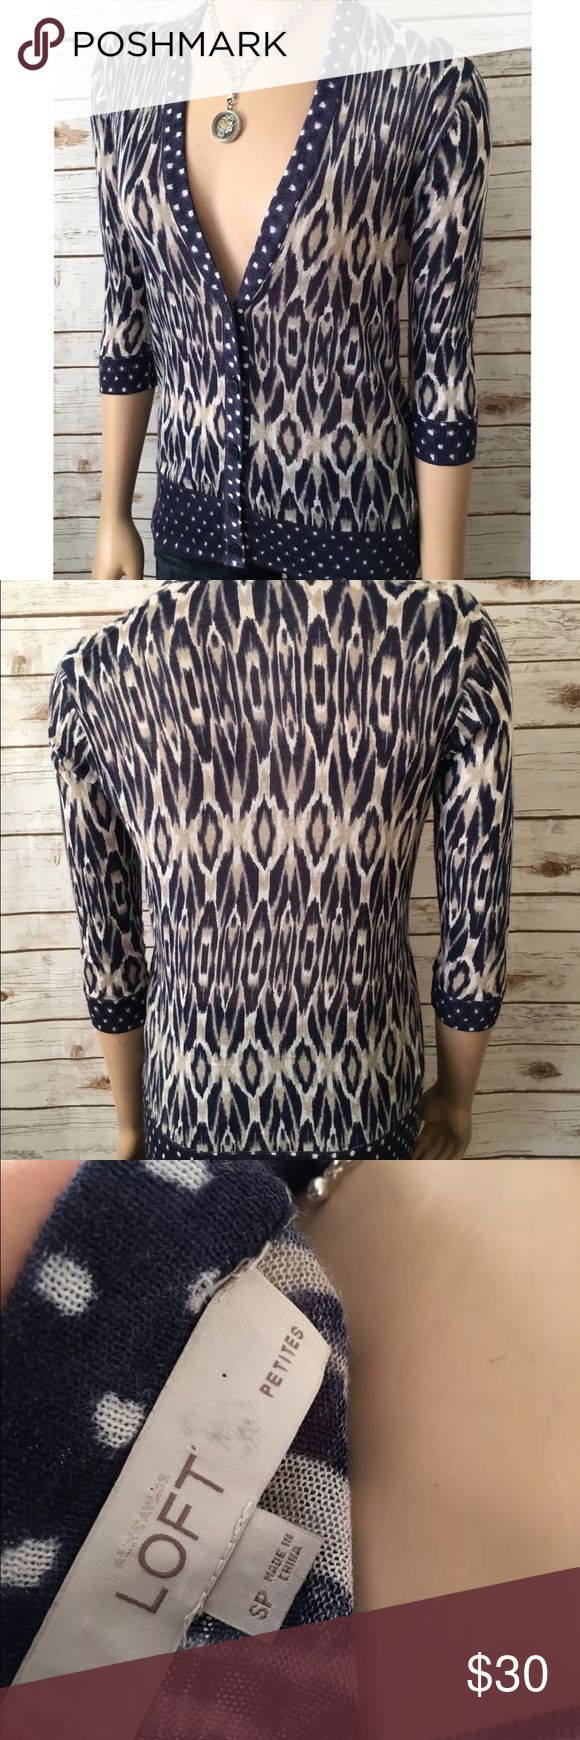 Ann Taylor Loft Petites Cardigan Button Front Very pretty, great used condition. Always open to reasonable offers! LOFT Sweaters Cardigans